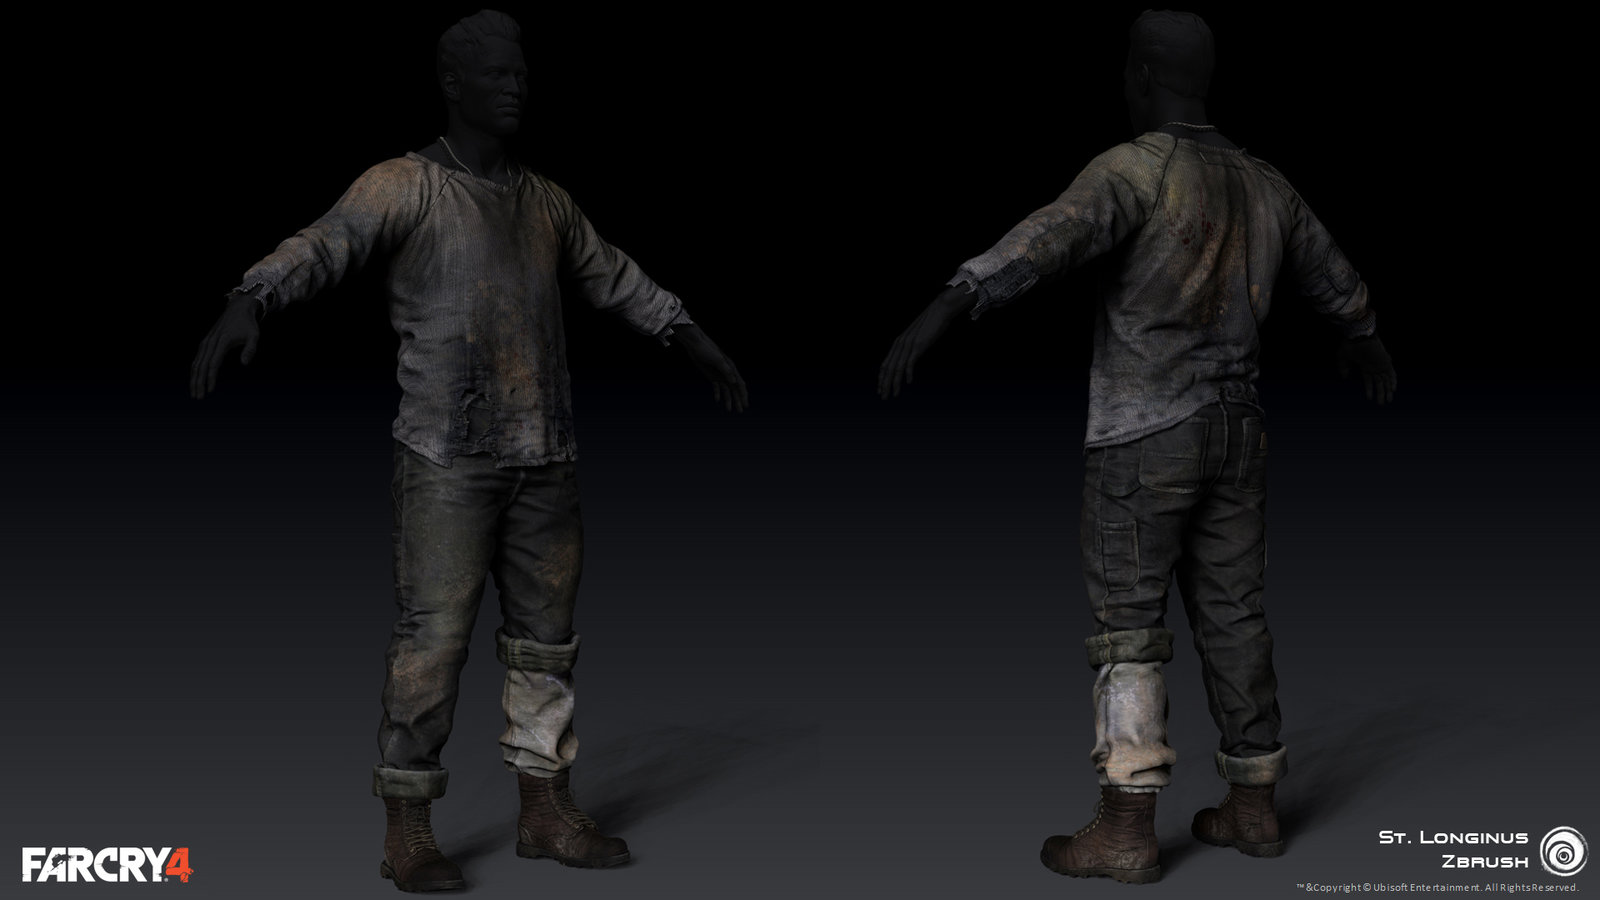 Zbrush Polypaint/Textured Body